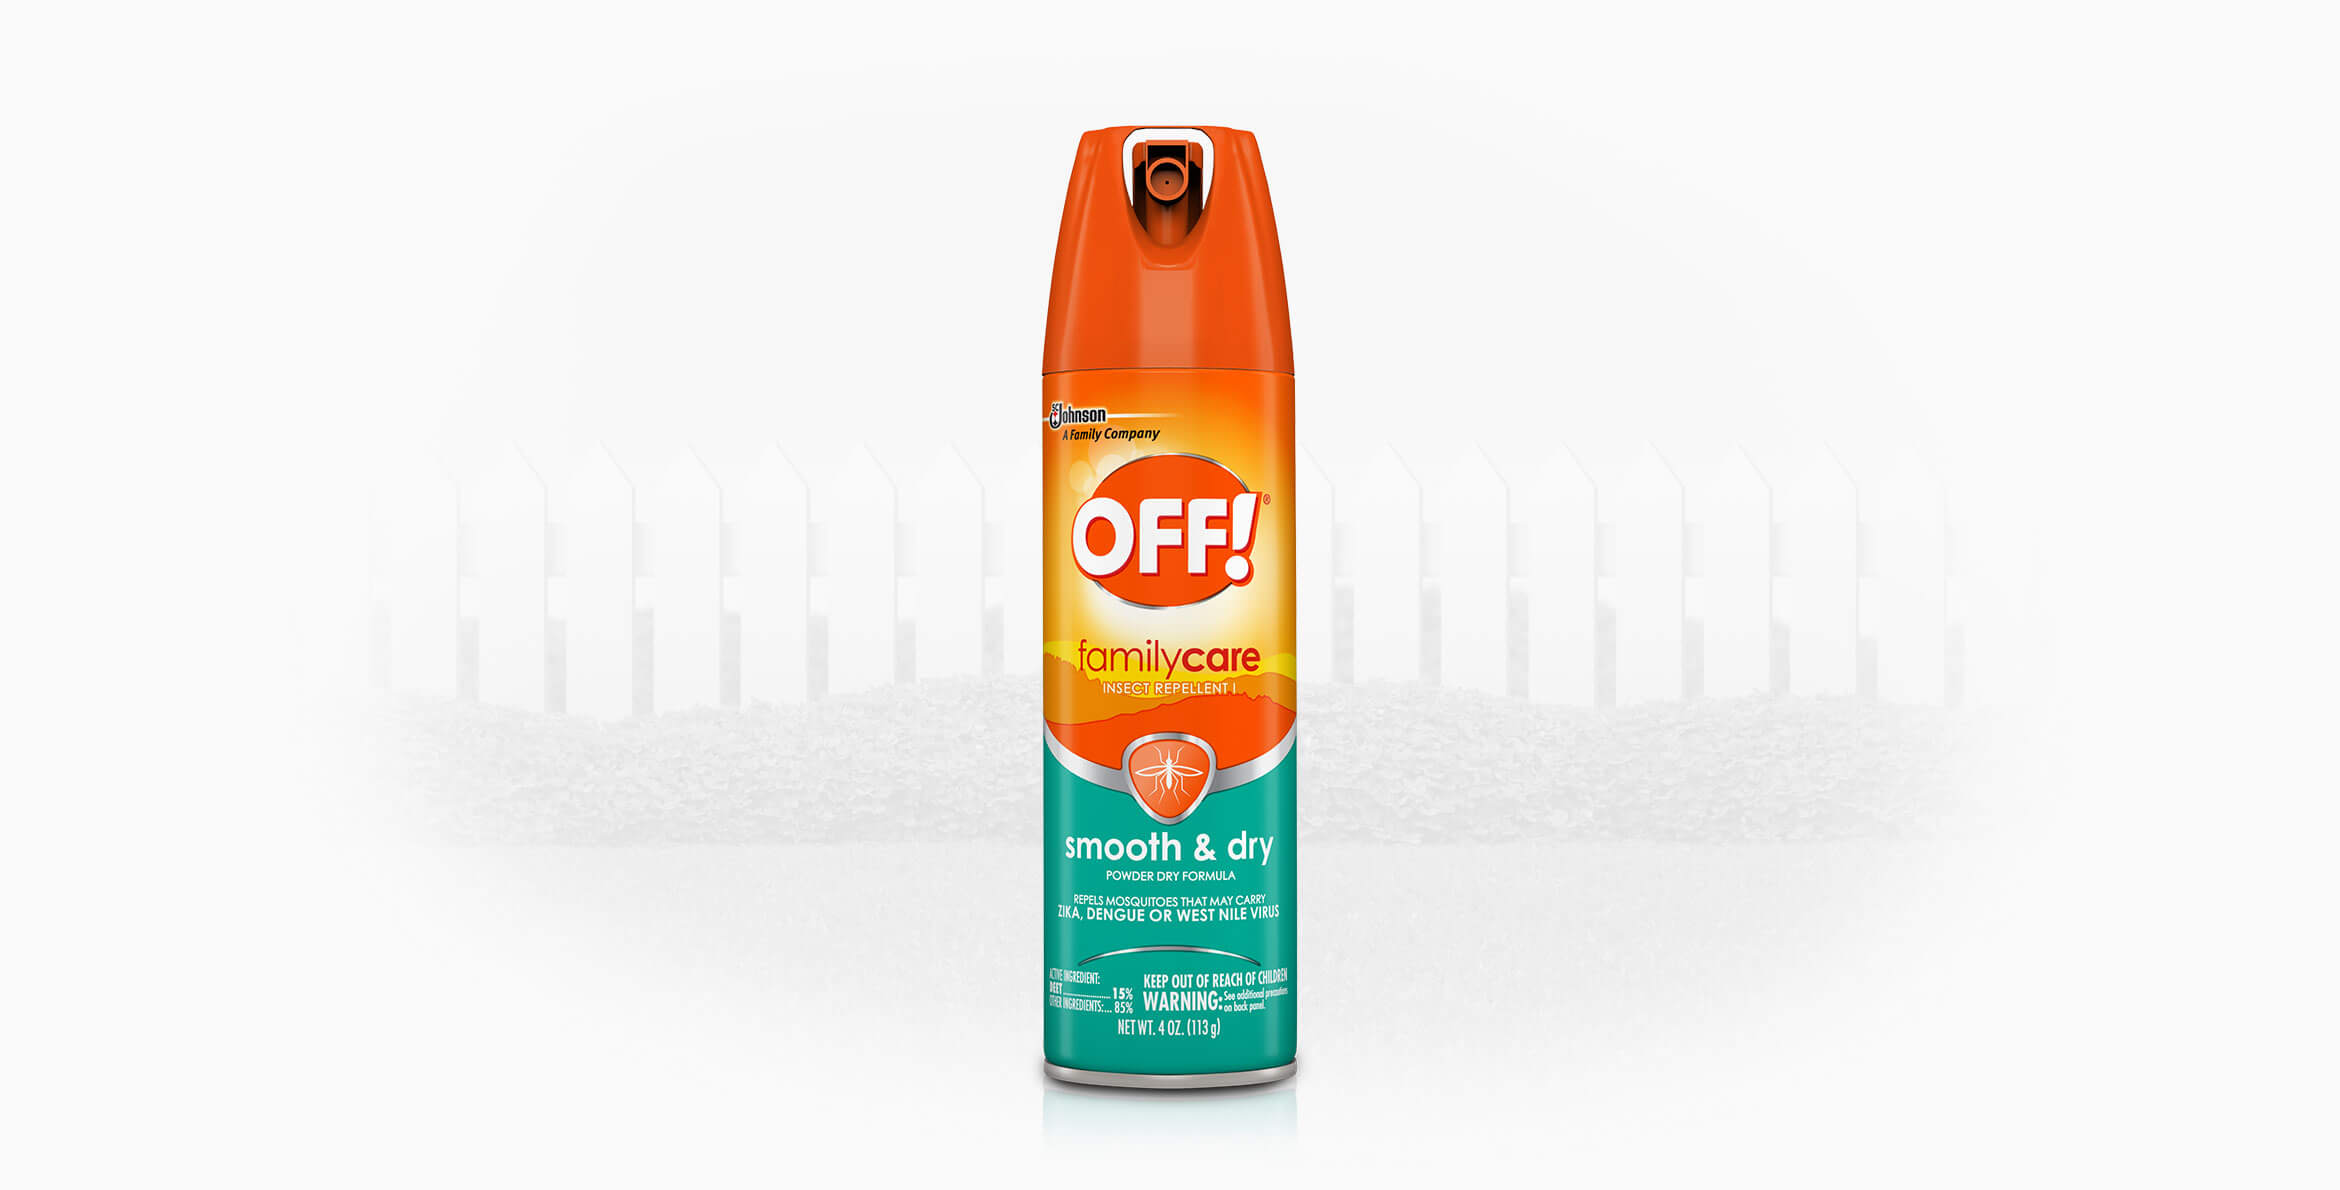 OFF!® FamilyCare Insect Repellent I (Smooth & Dry)